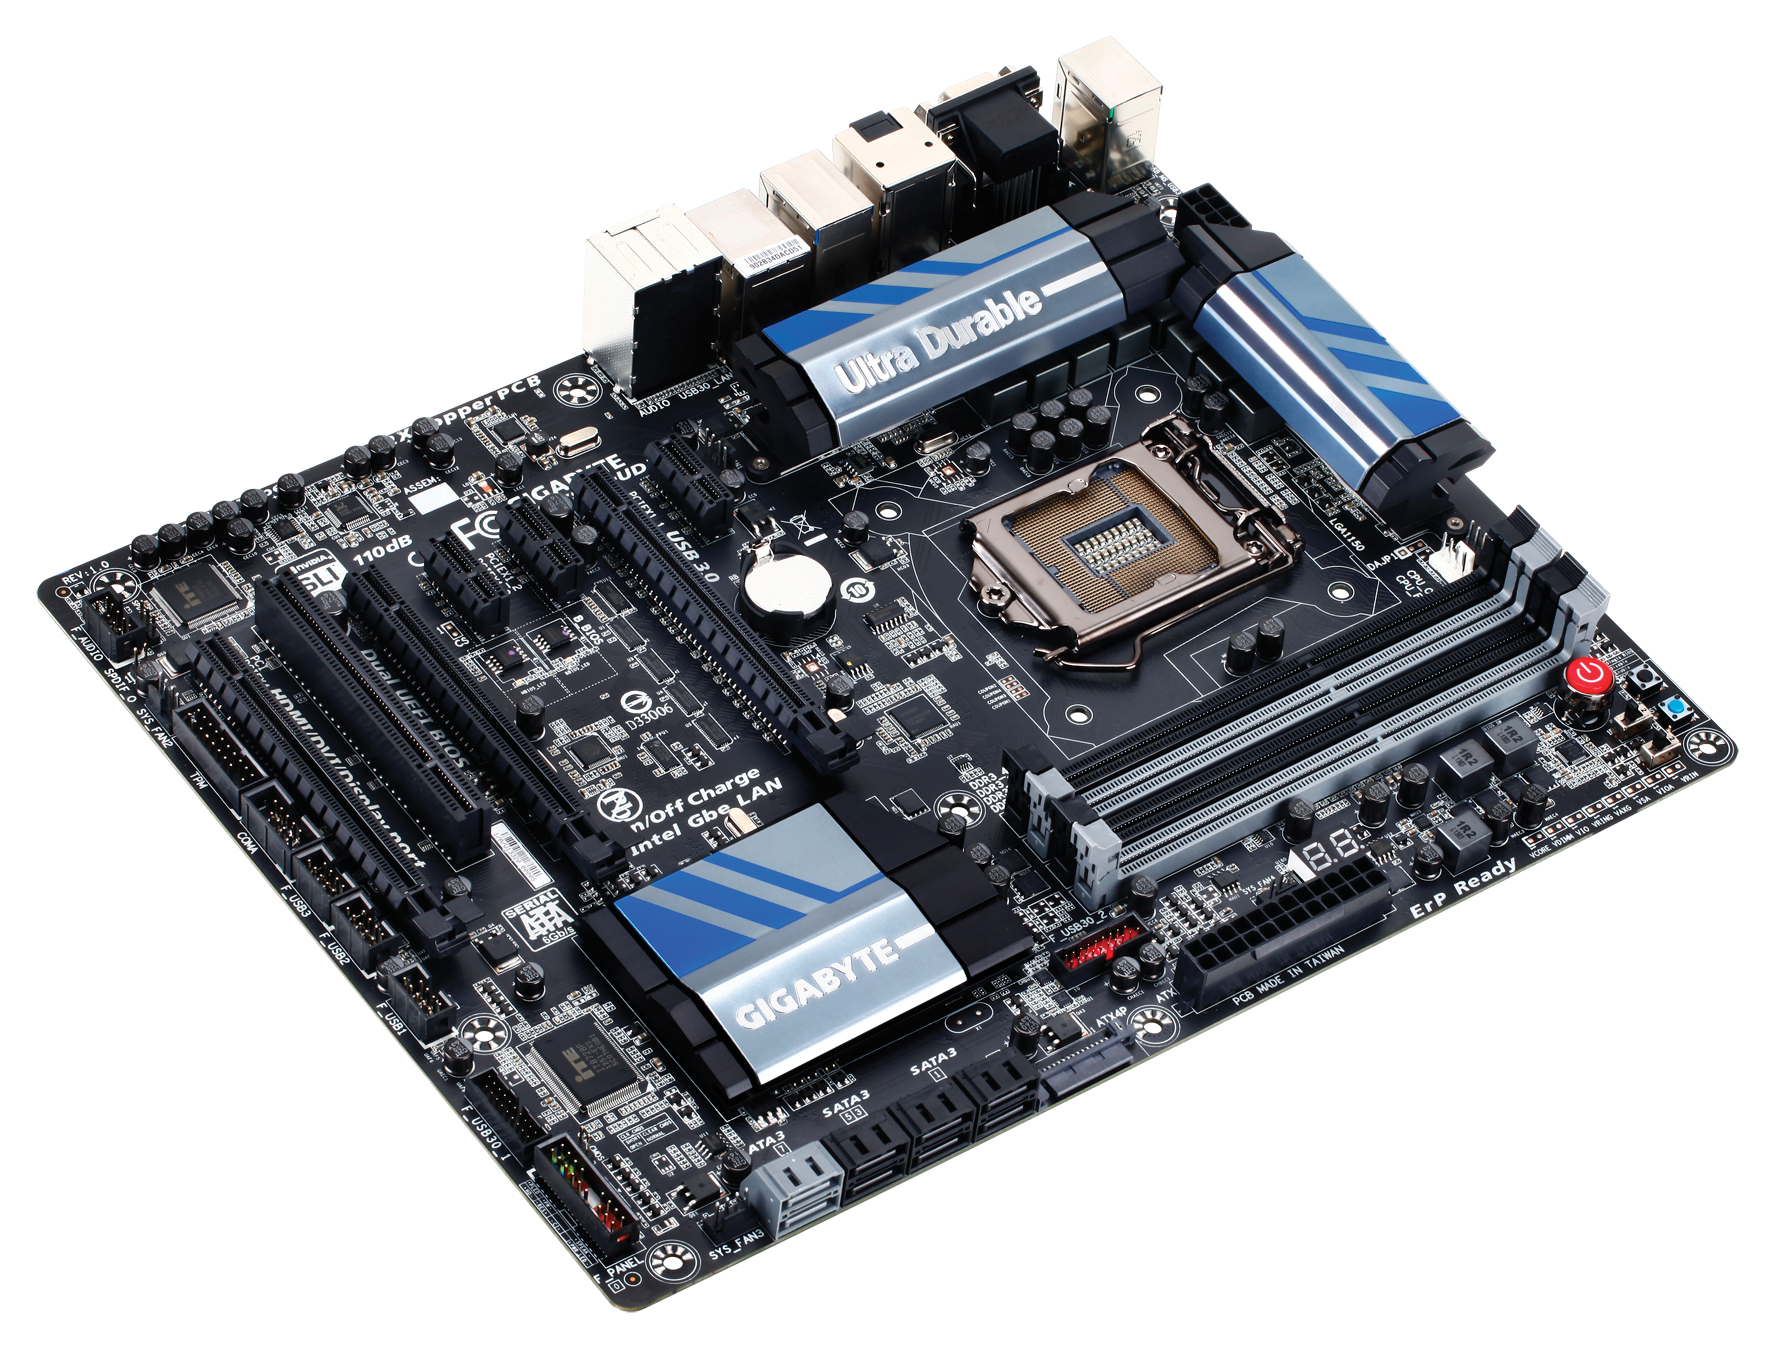 Gigabyte Z87X-UD3H Overview, Visual Inspection, Board